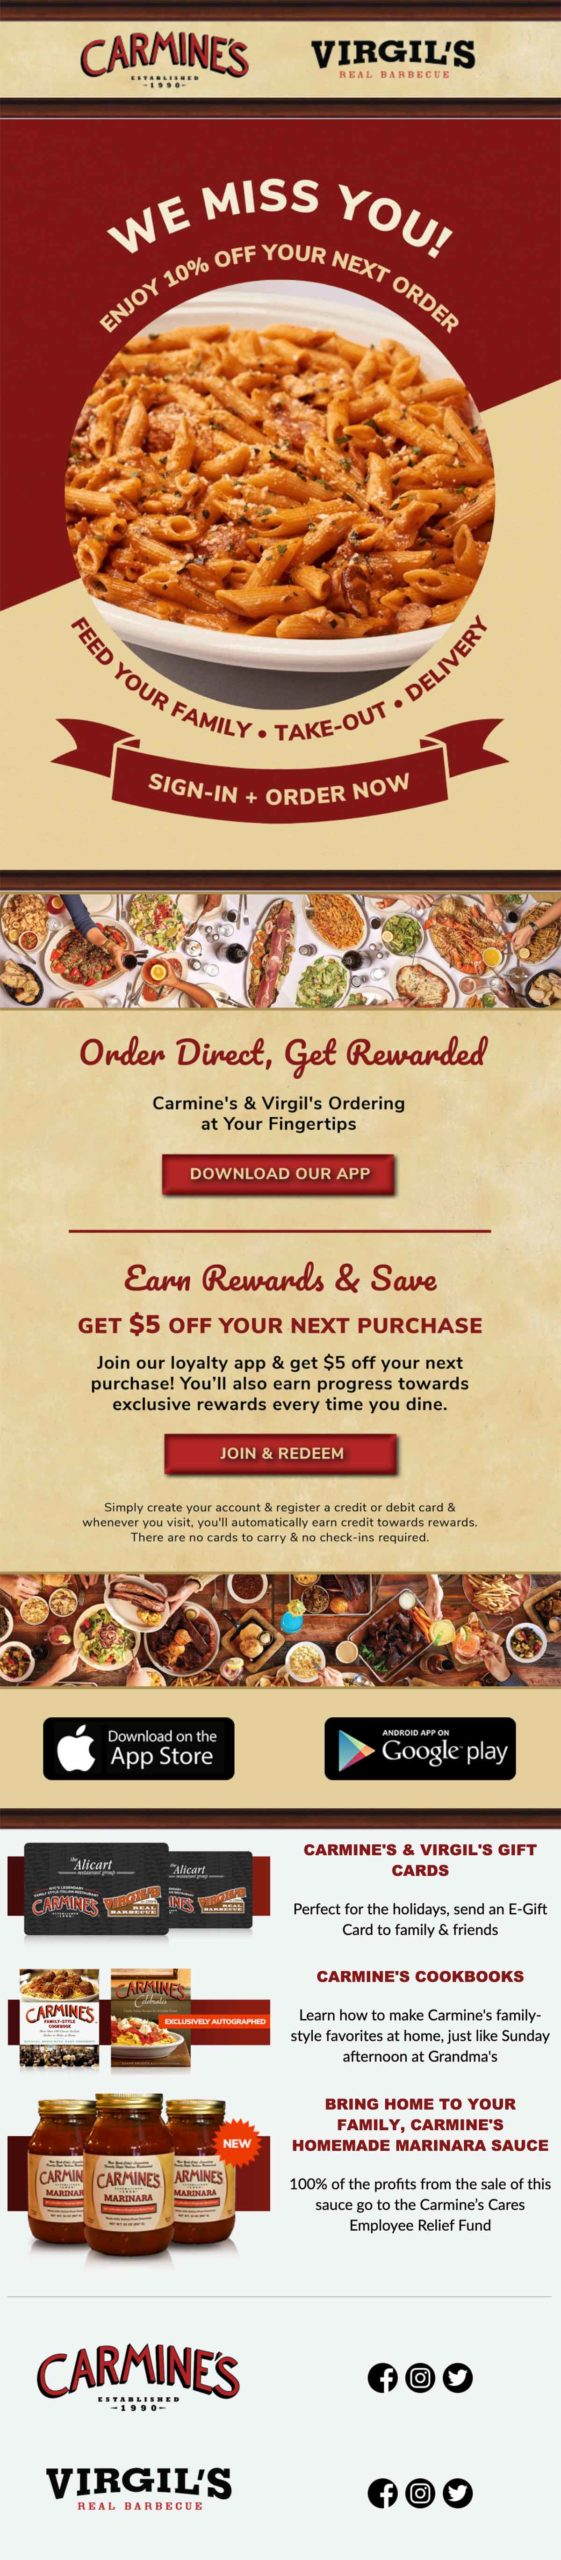 """Carmine's & Virgil's promotional email, """"We Miss You!"""""""